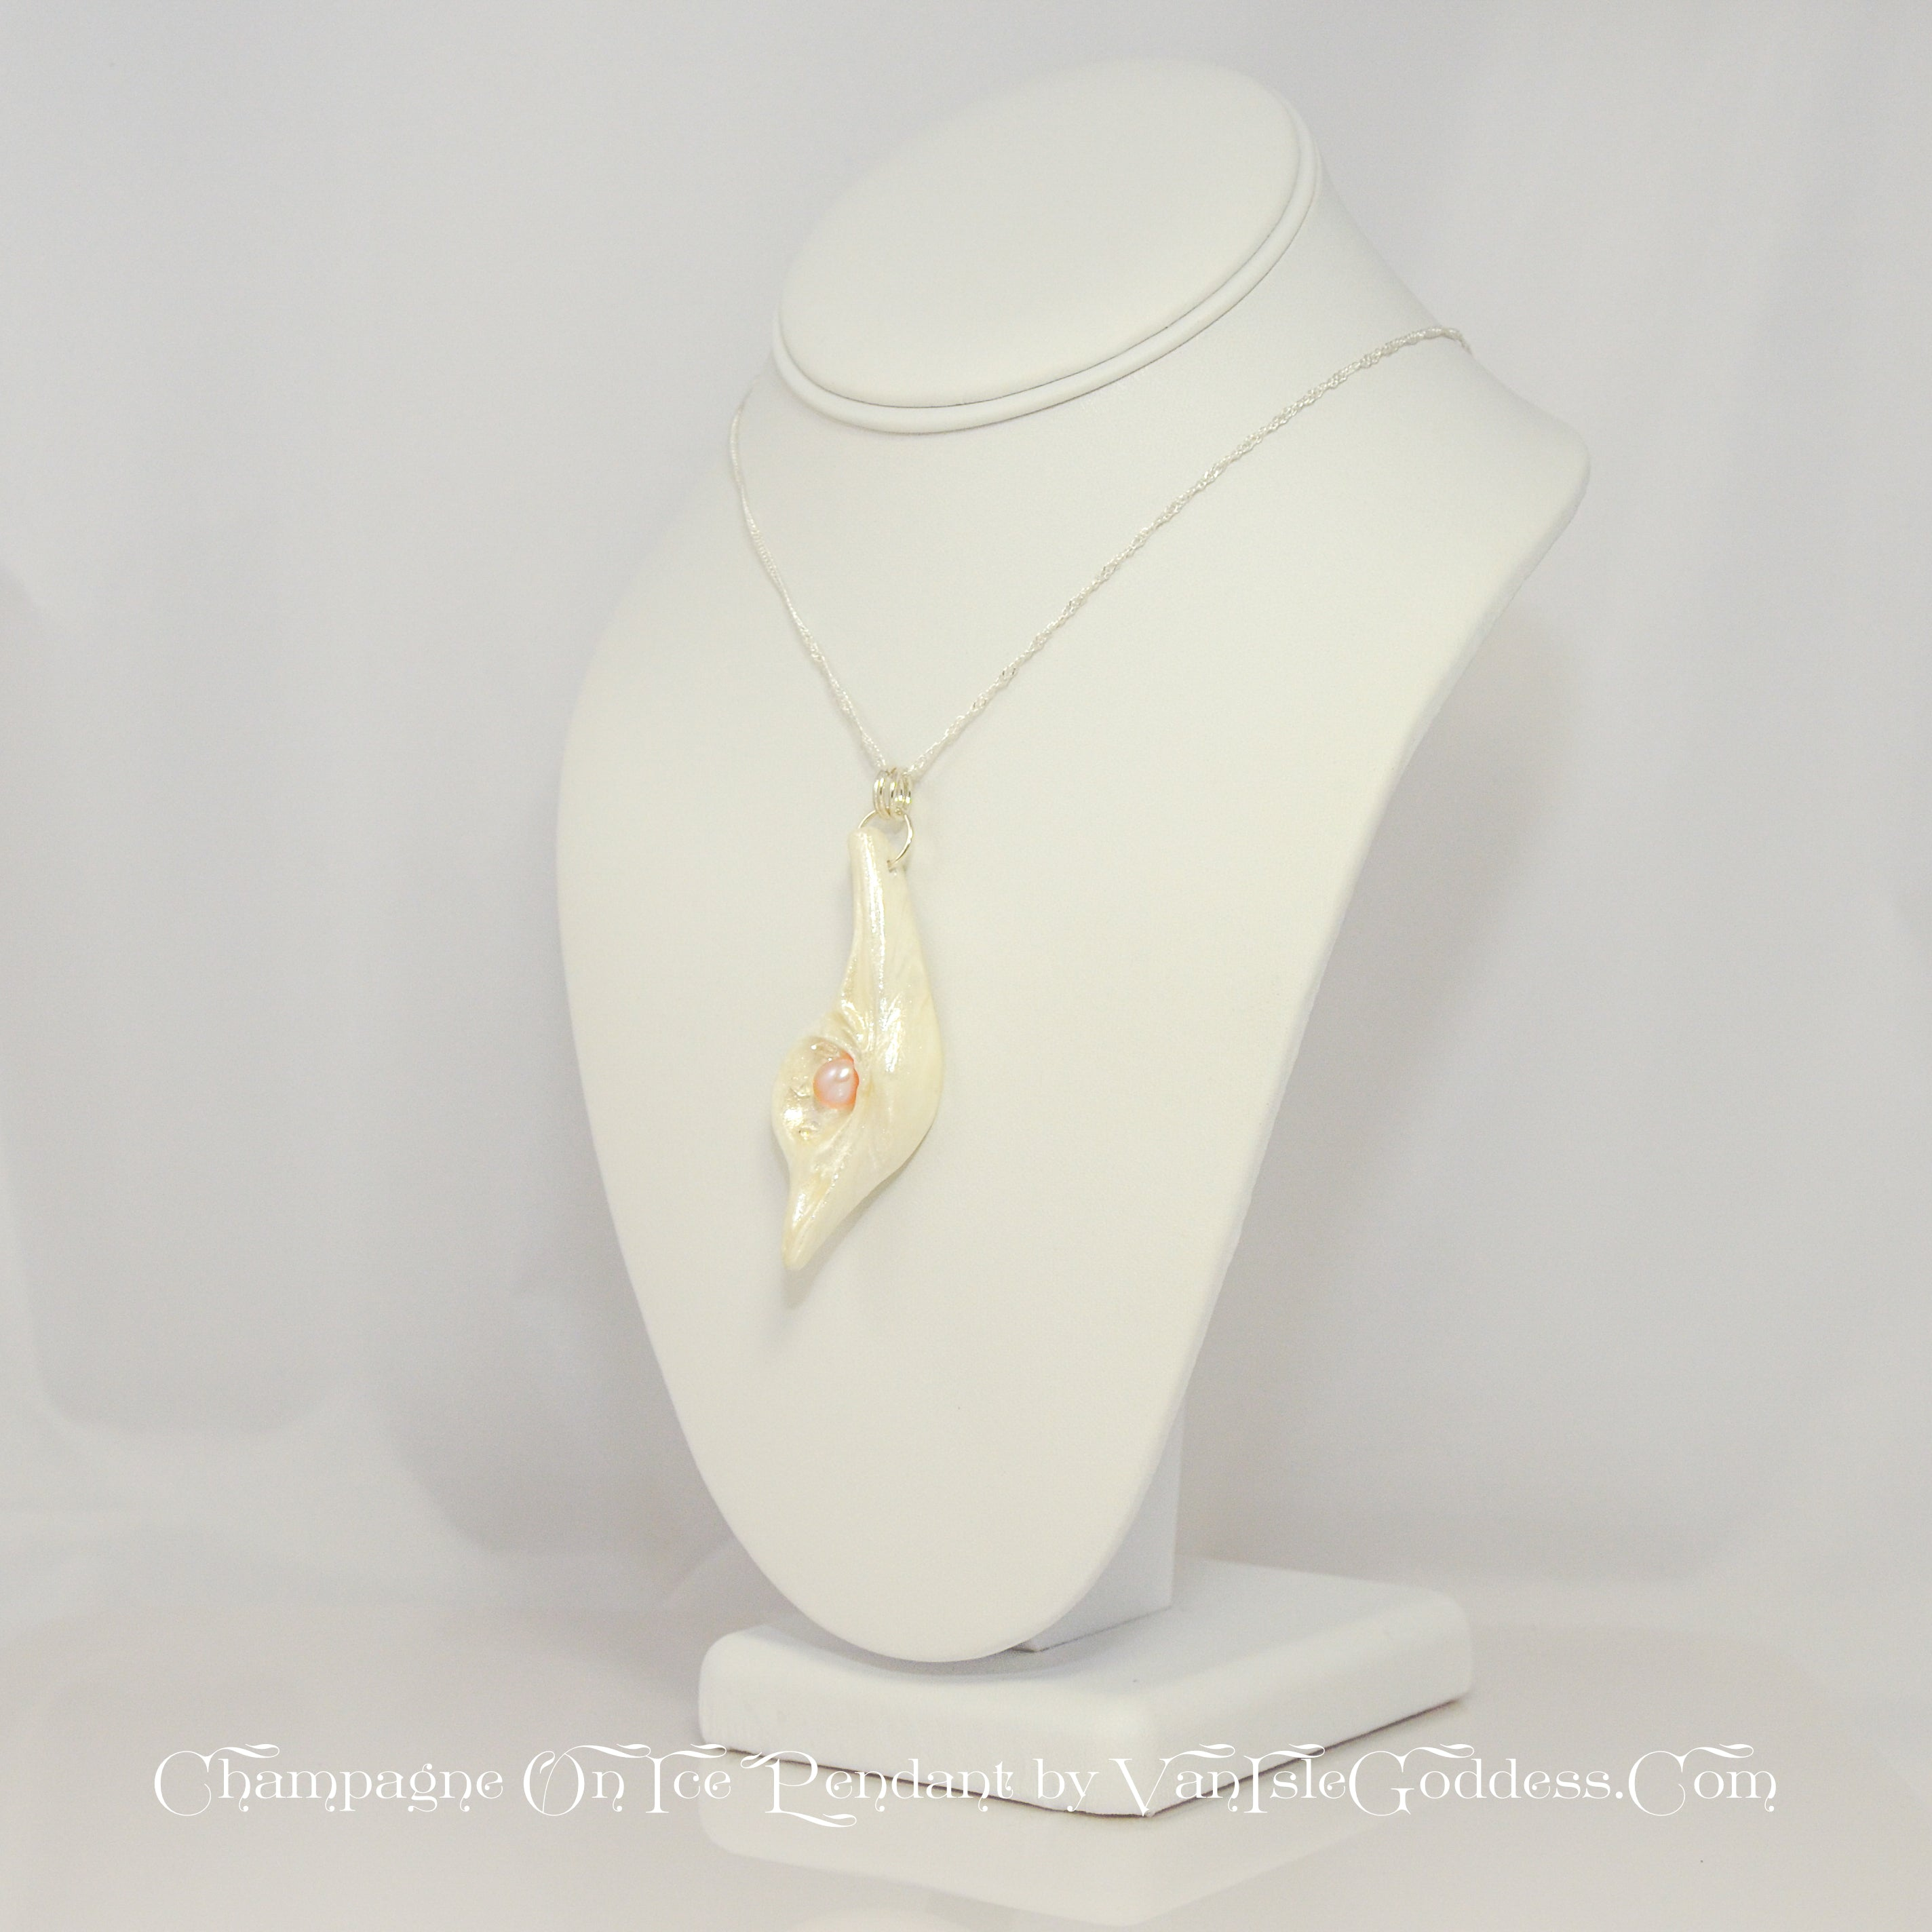 Champagne On Ice Island Goddess Seashell Pendant